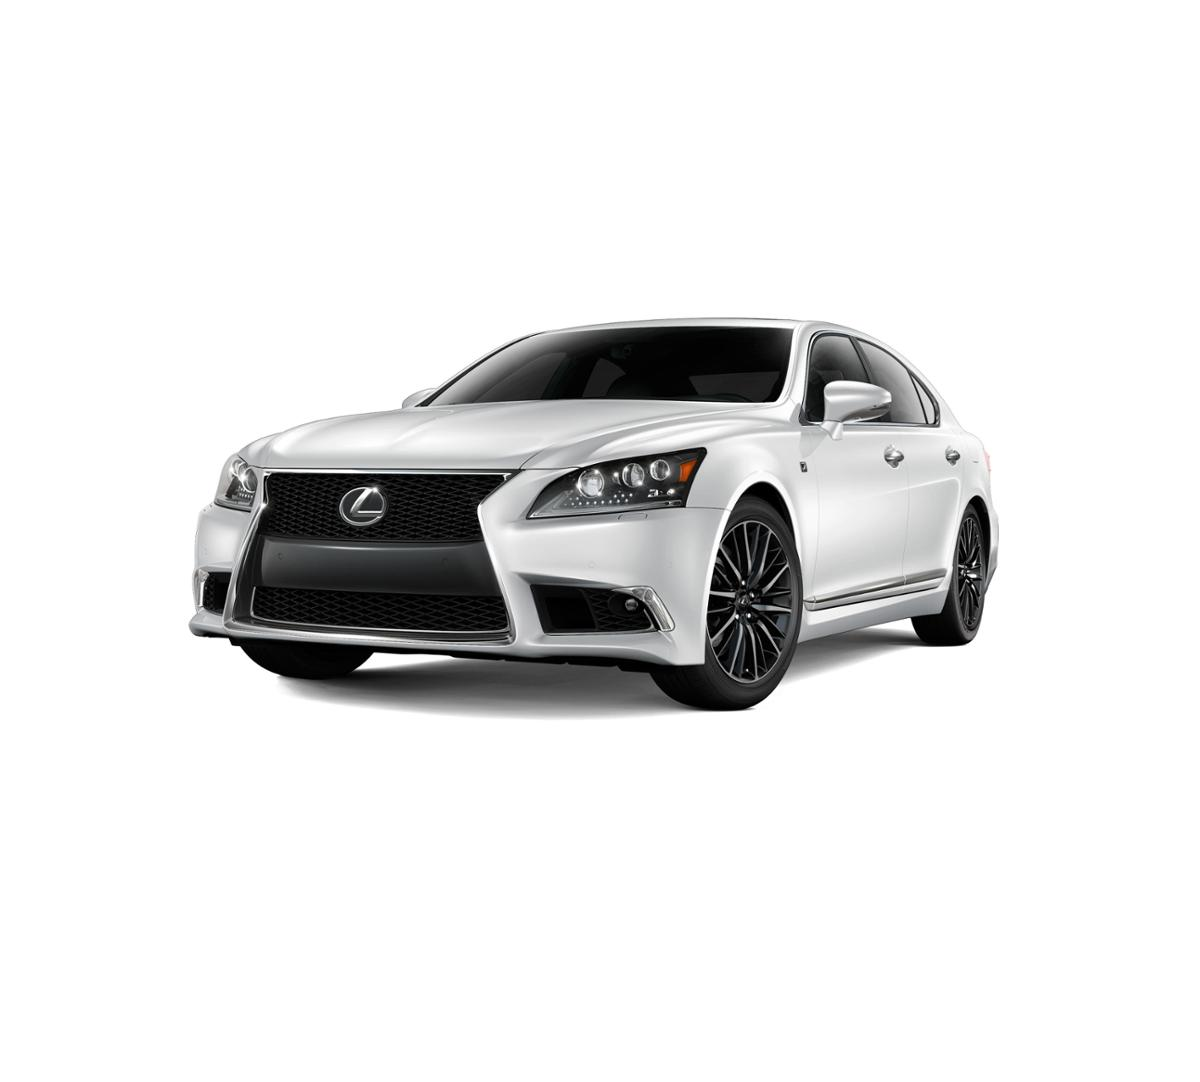 new ultra white 2017 lexus ls 460 f sport for sale fremont ca magnussen lexus of fremont. Black Bedroom Furniture Sets. Home Design Ideas